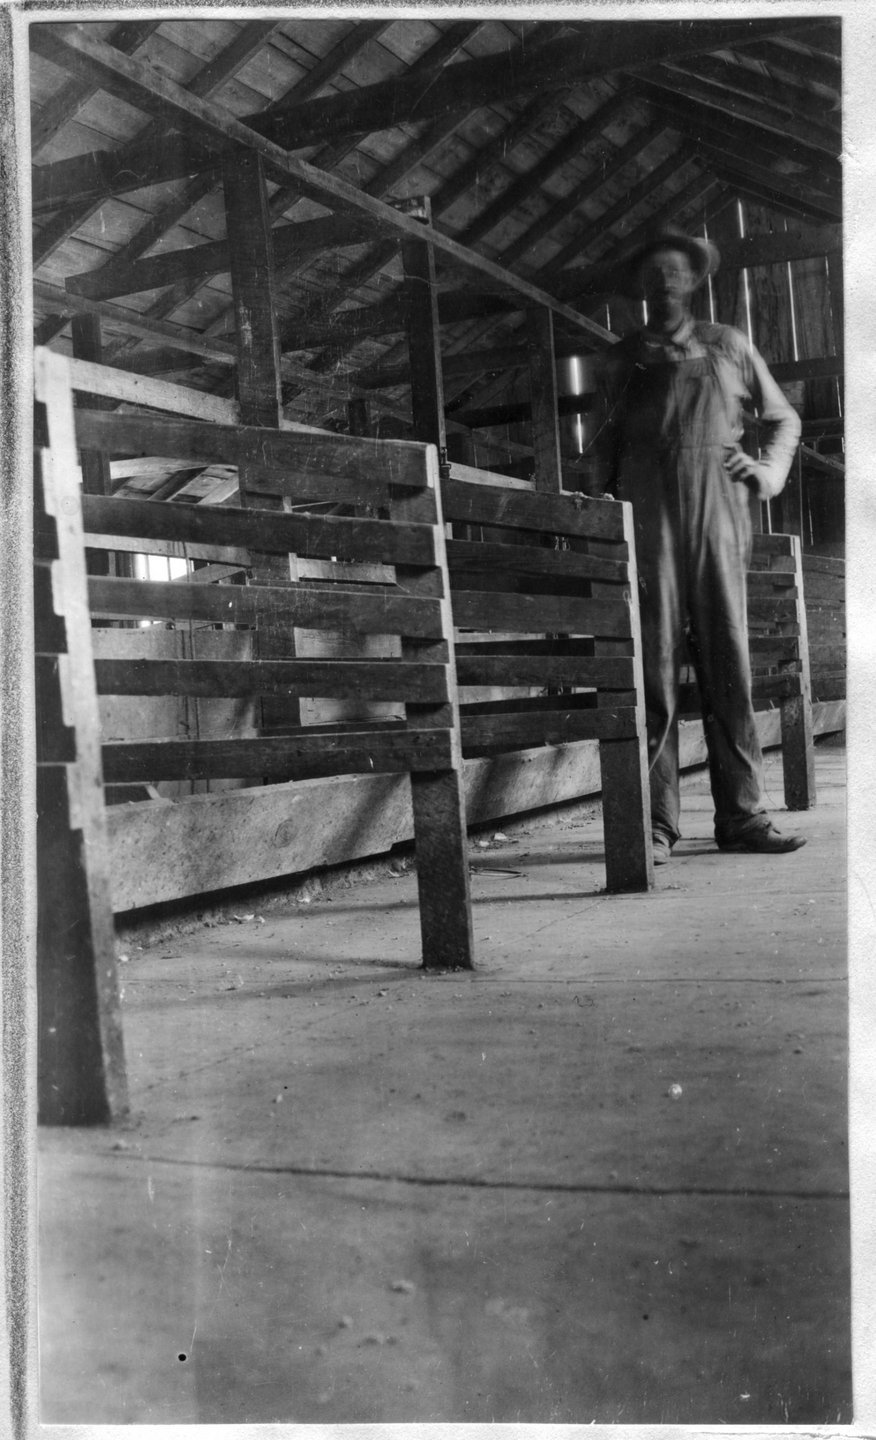 112~J. M. Nunnally Barn Interior Aug 1920.jpg